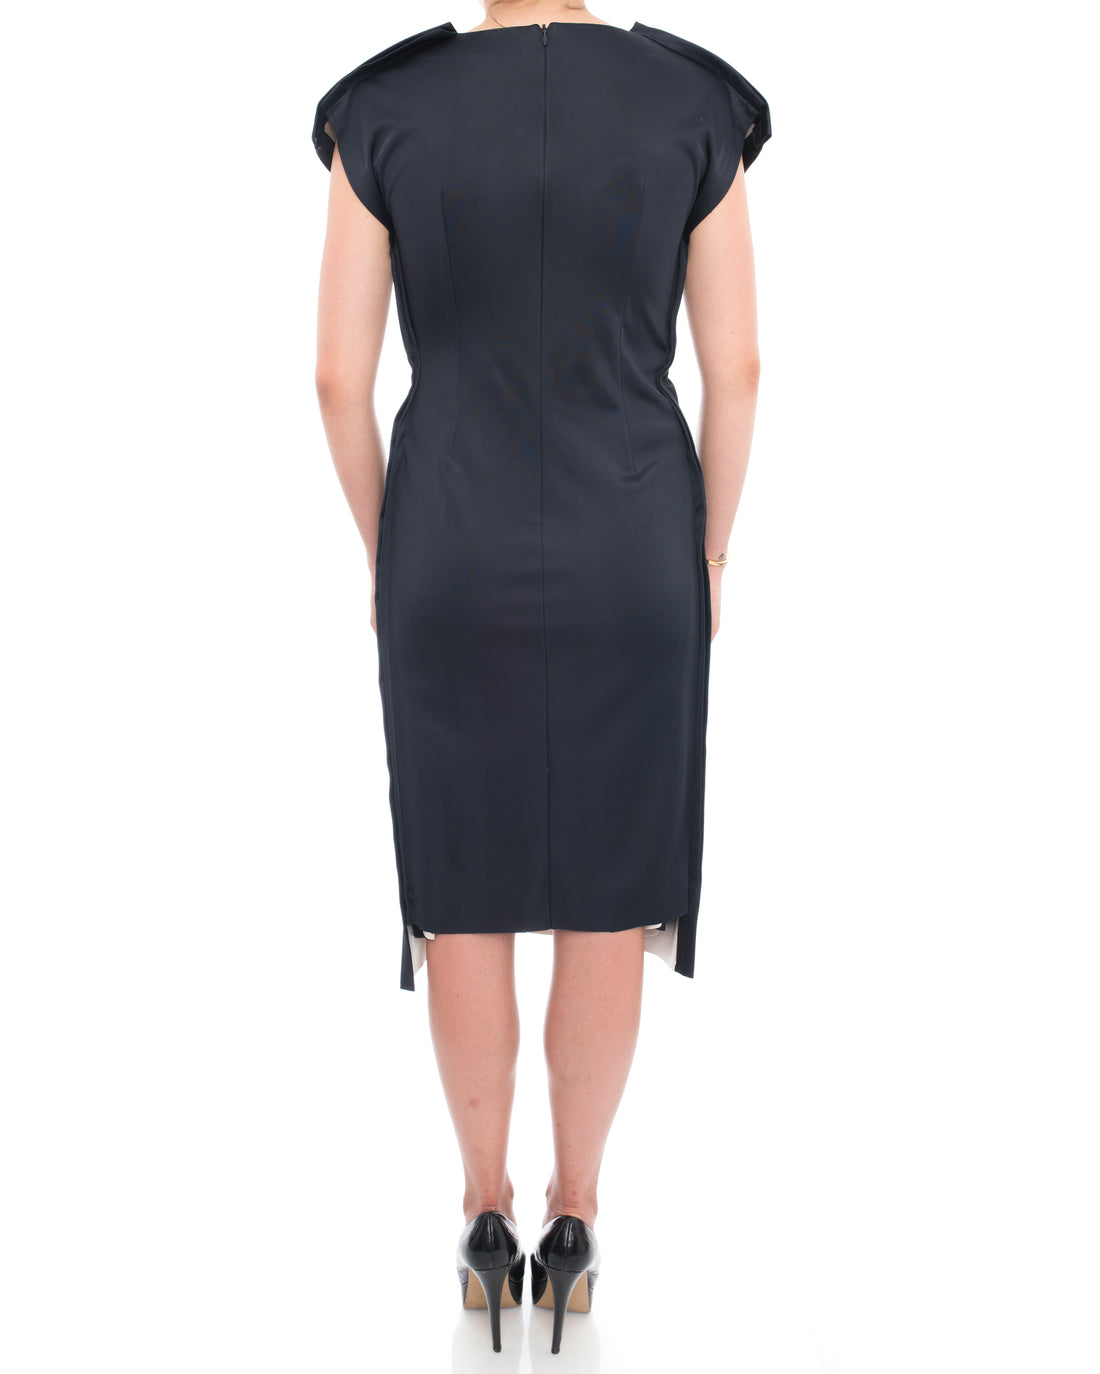 Marni Navy Satin Knot Front Wiggle Midi Dress - 10